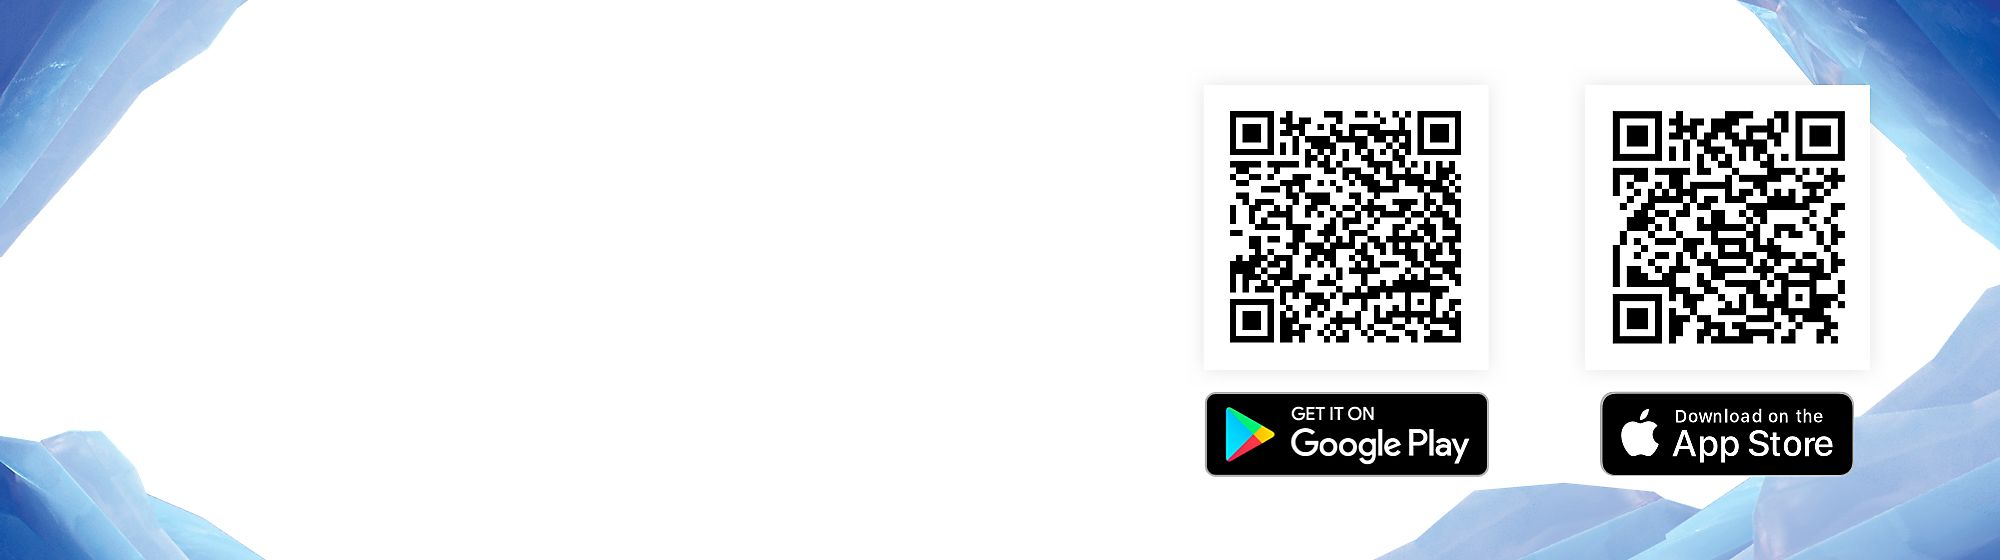 Using your mobile phone scan the QR code below to download the Disney Scan App